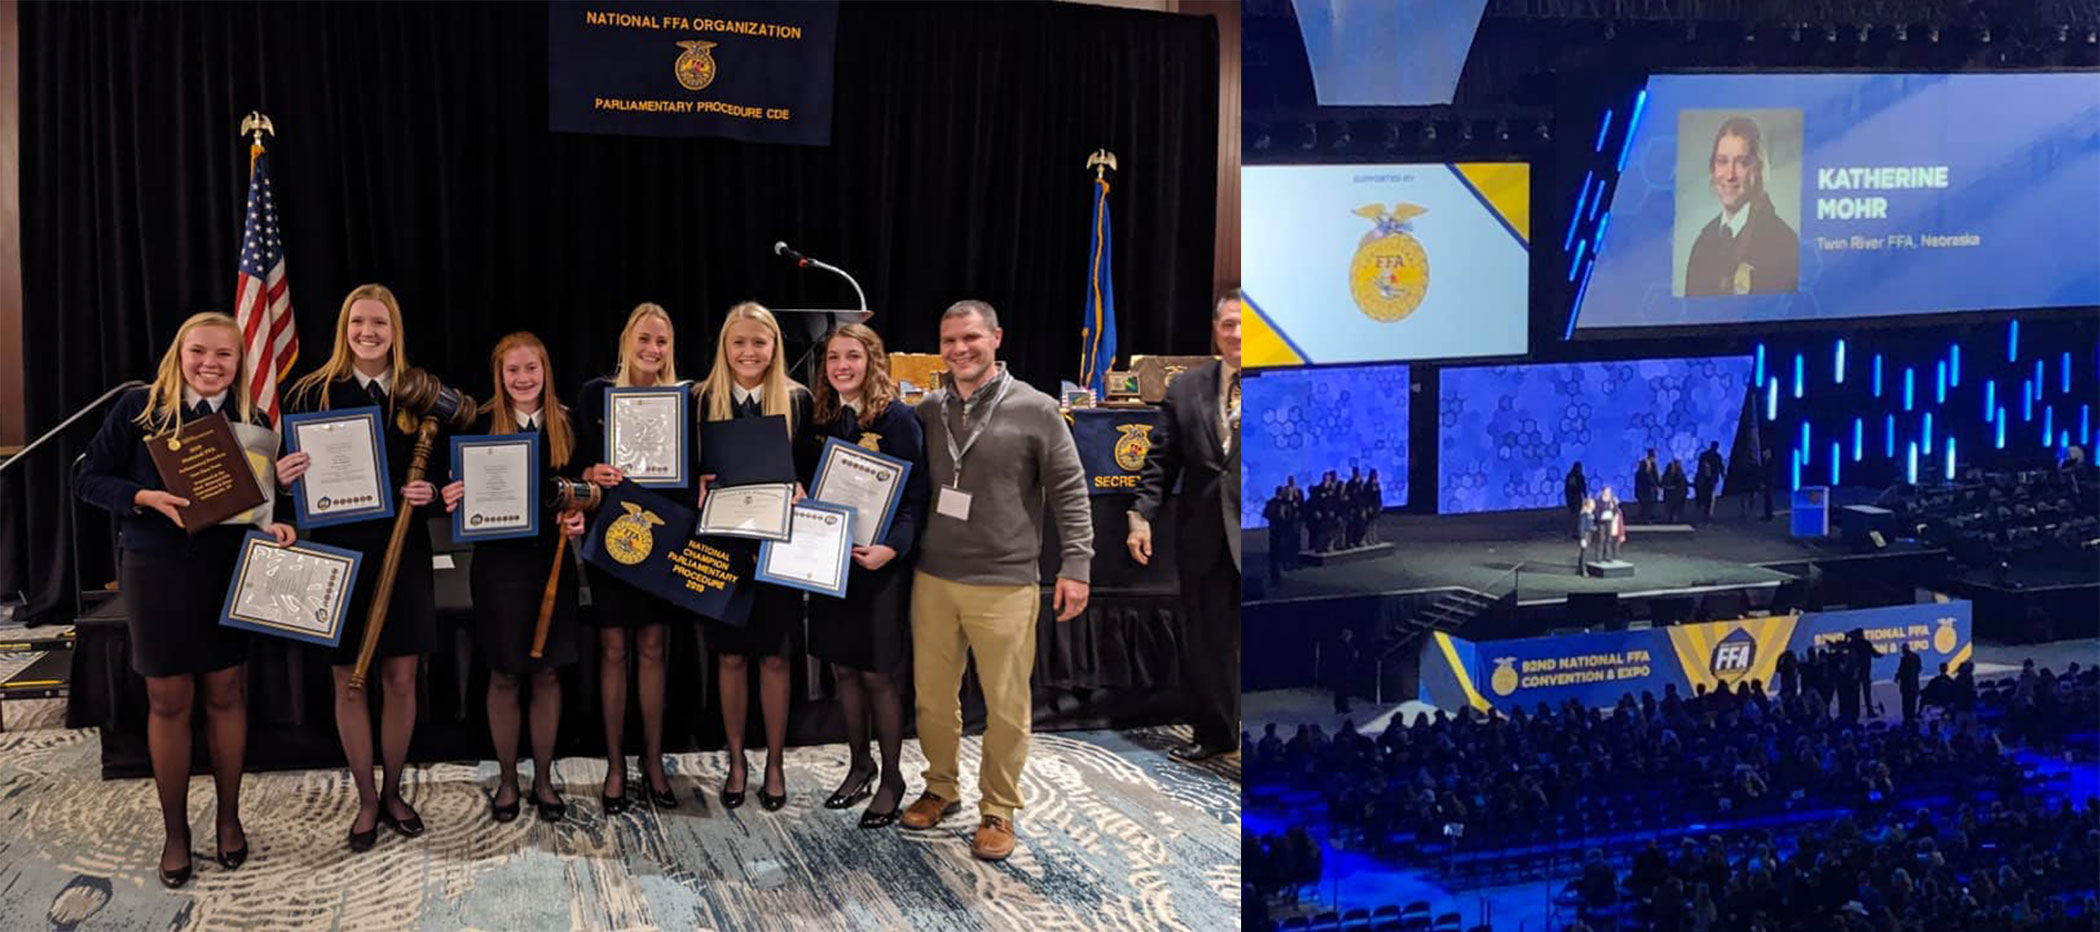 Nebraska FFA Celebrates Success at National FFA Convention